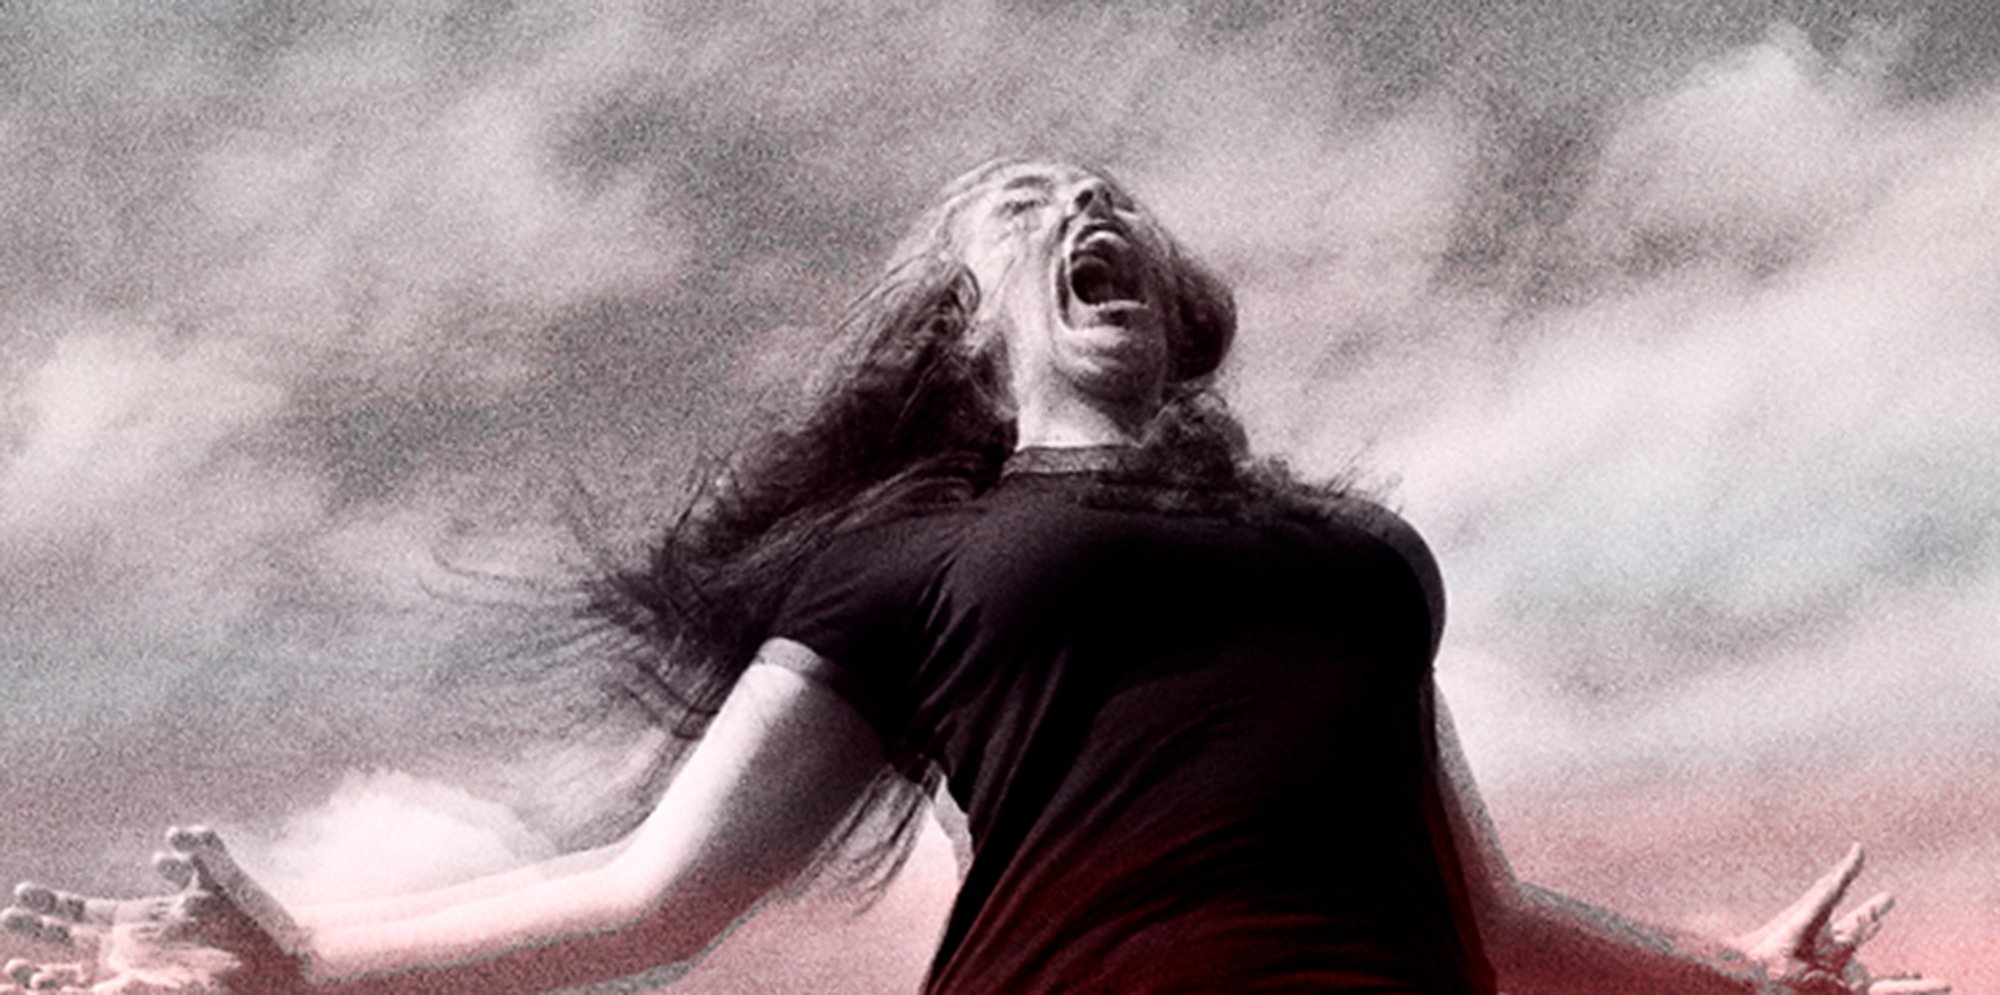 A black and white image of a young woman pictured from the waist up, she is pictured outside and is shouting with her arms outstretched. The image is grainy and has the effect of a badly developed photo.